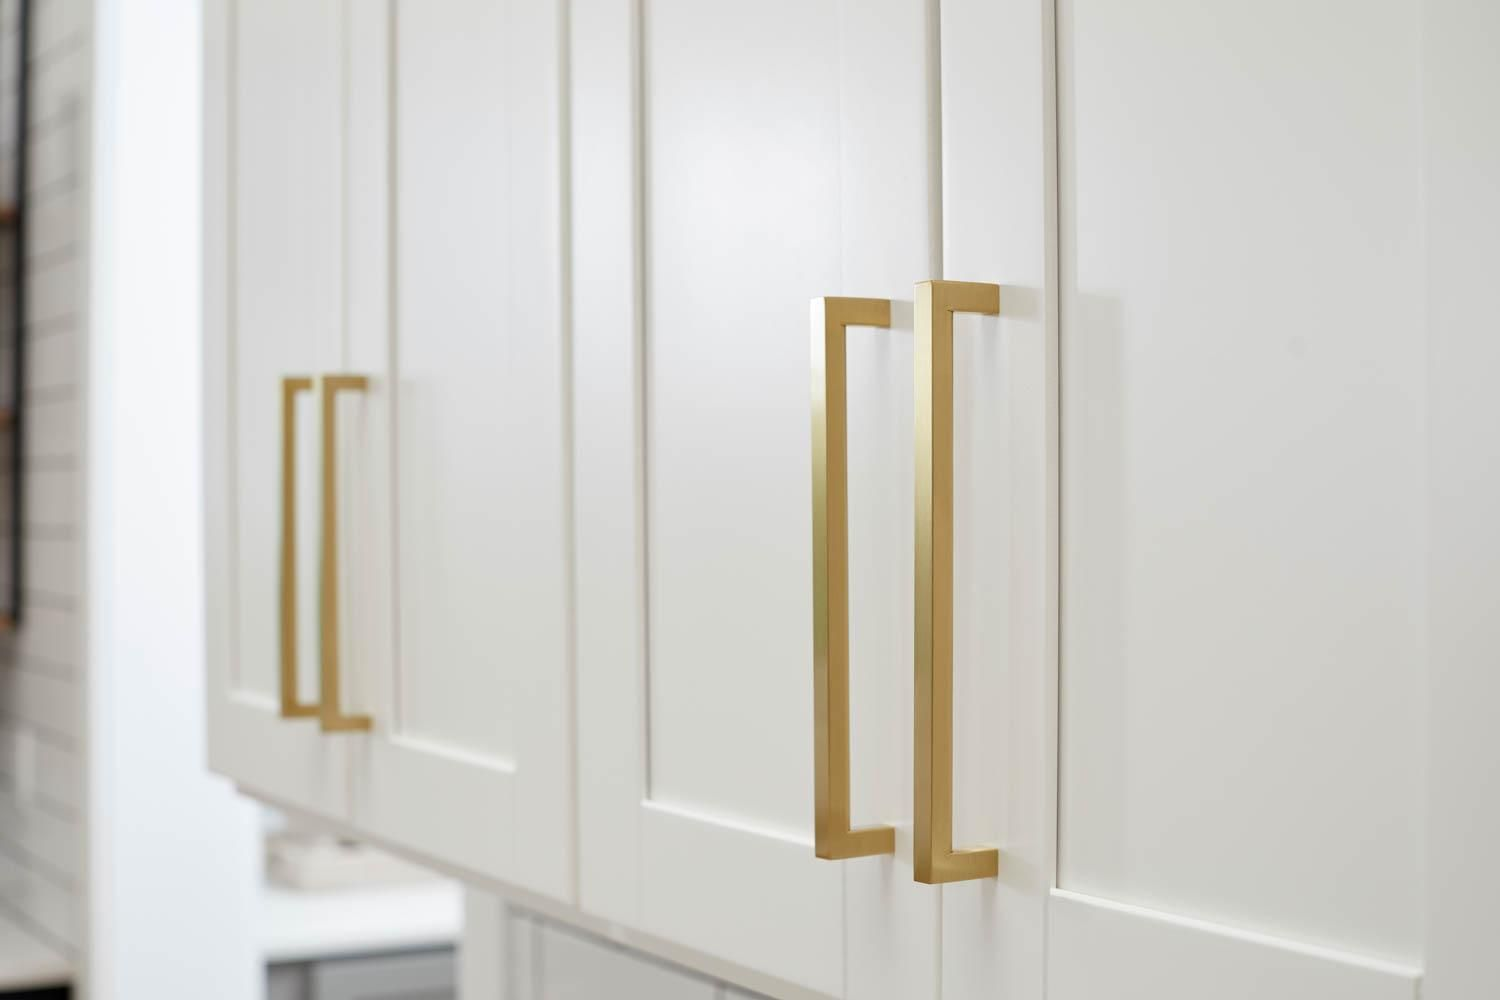 Modern Gold Handles Are A Stunning Accent To The White Cabinets Condo Decorating Gold Handles House Design